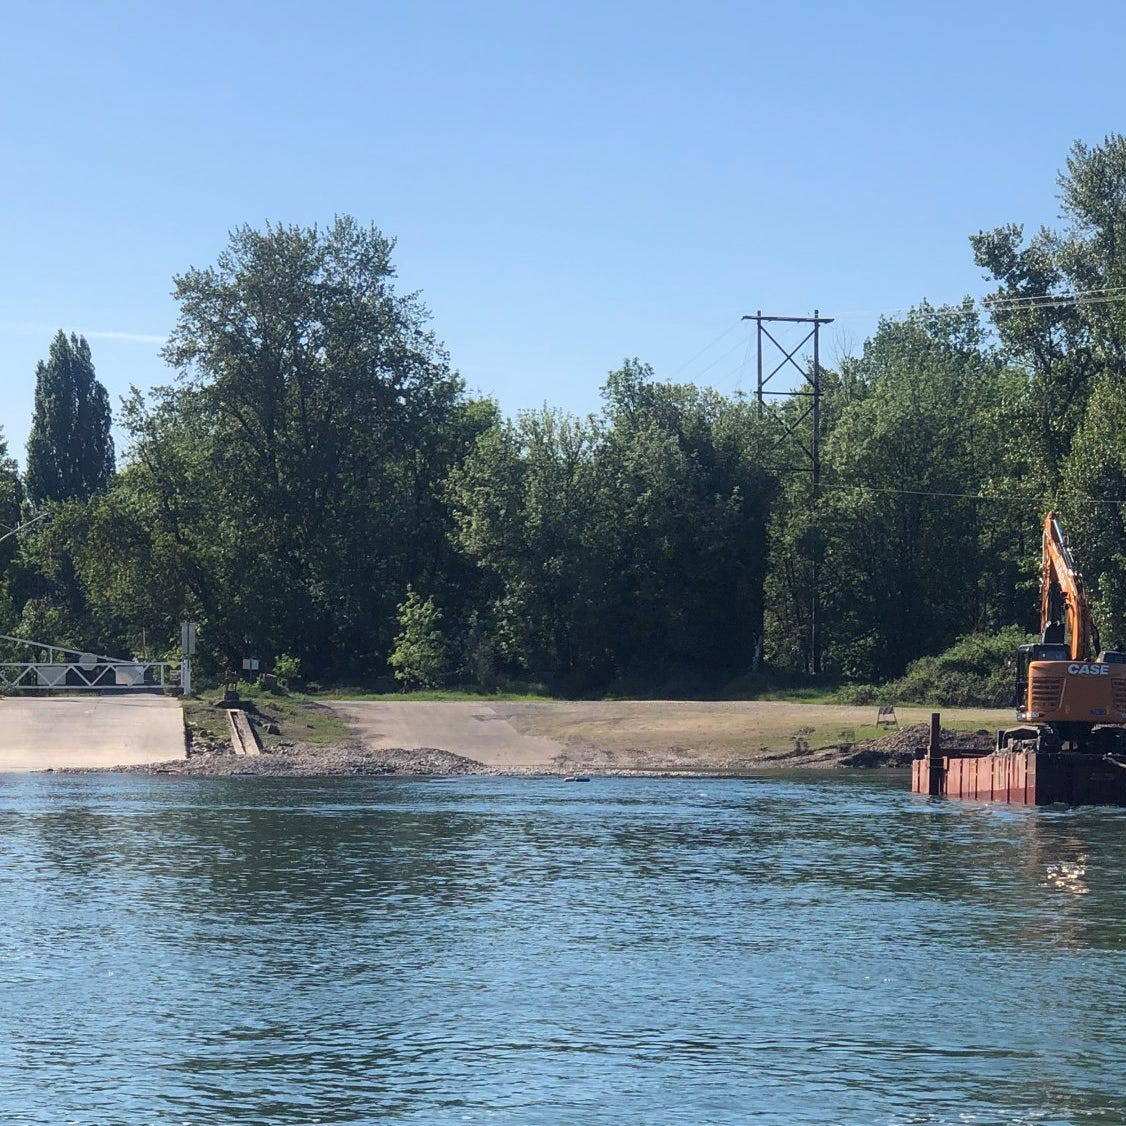 Wheatland Ferry reopens following dredging operation on Willamette River